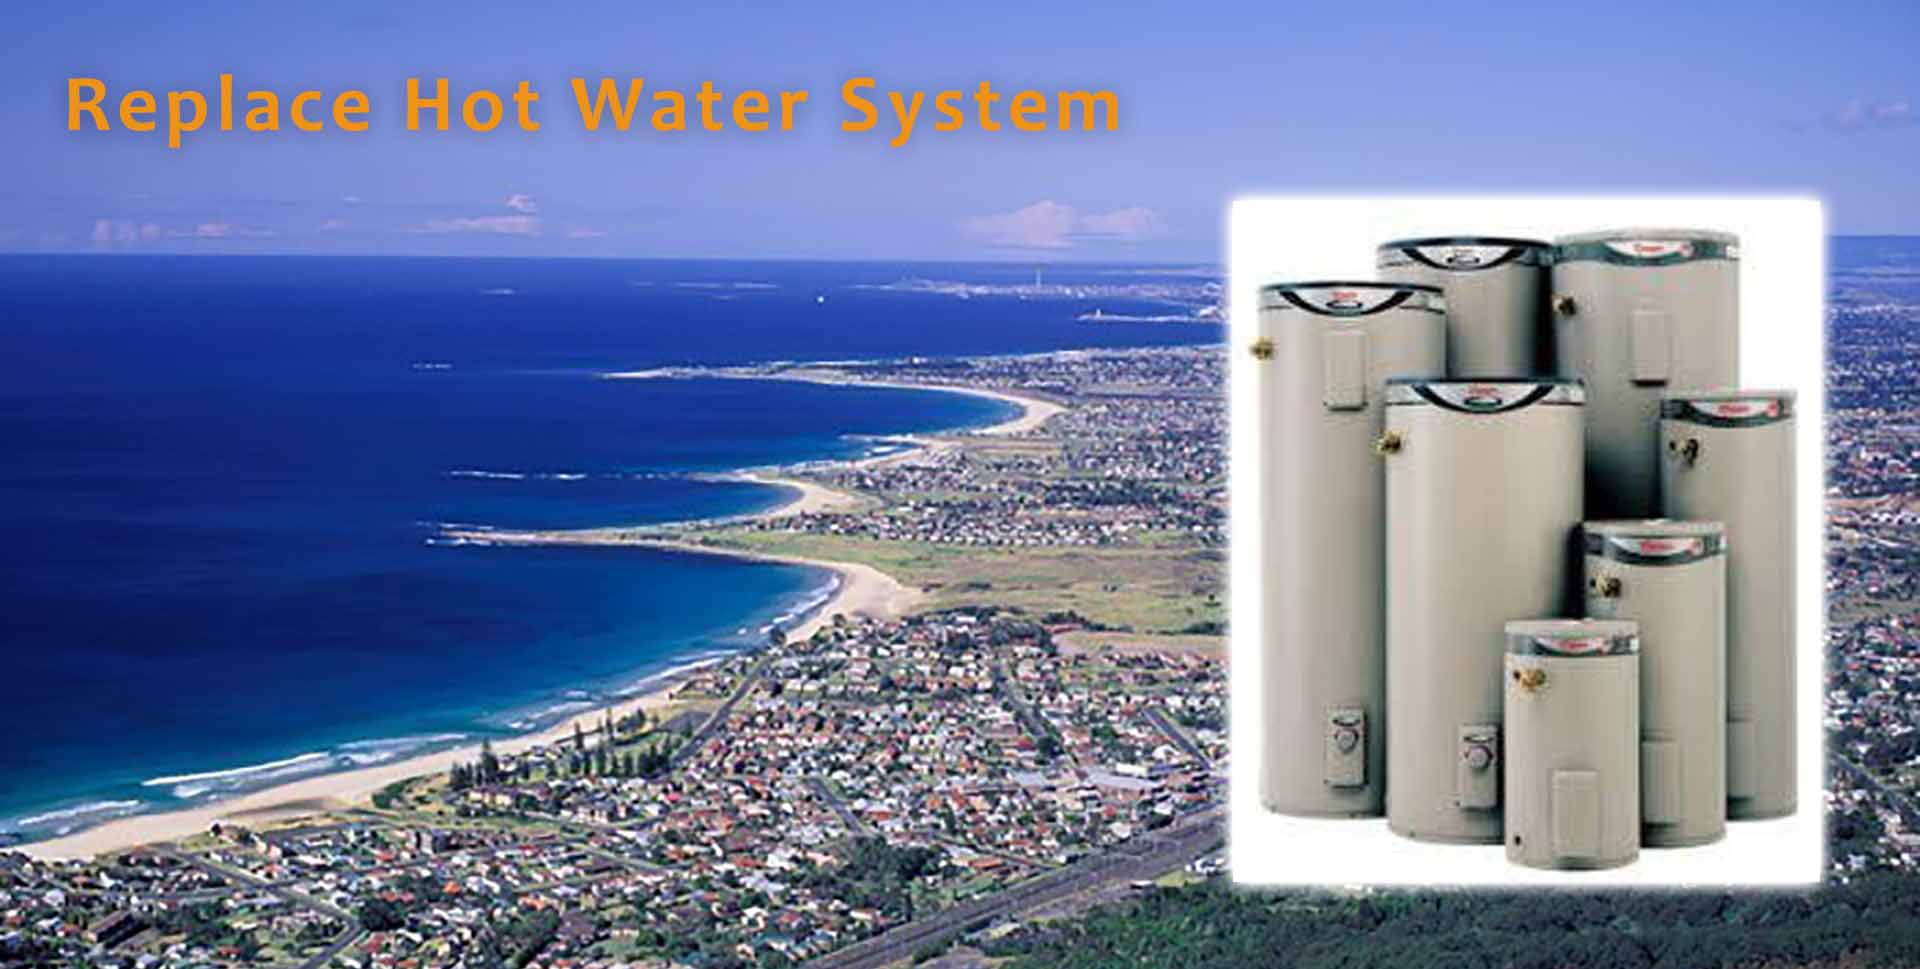 RW Jones Plumbing replacing hot water systems in Wollongong